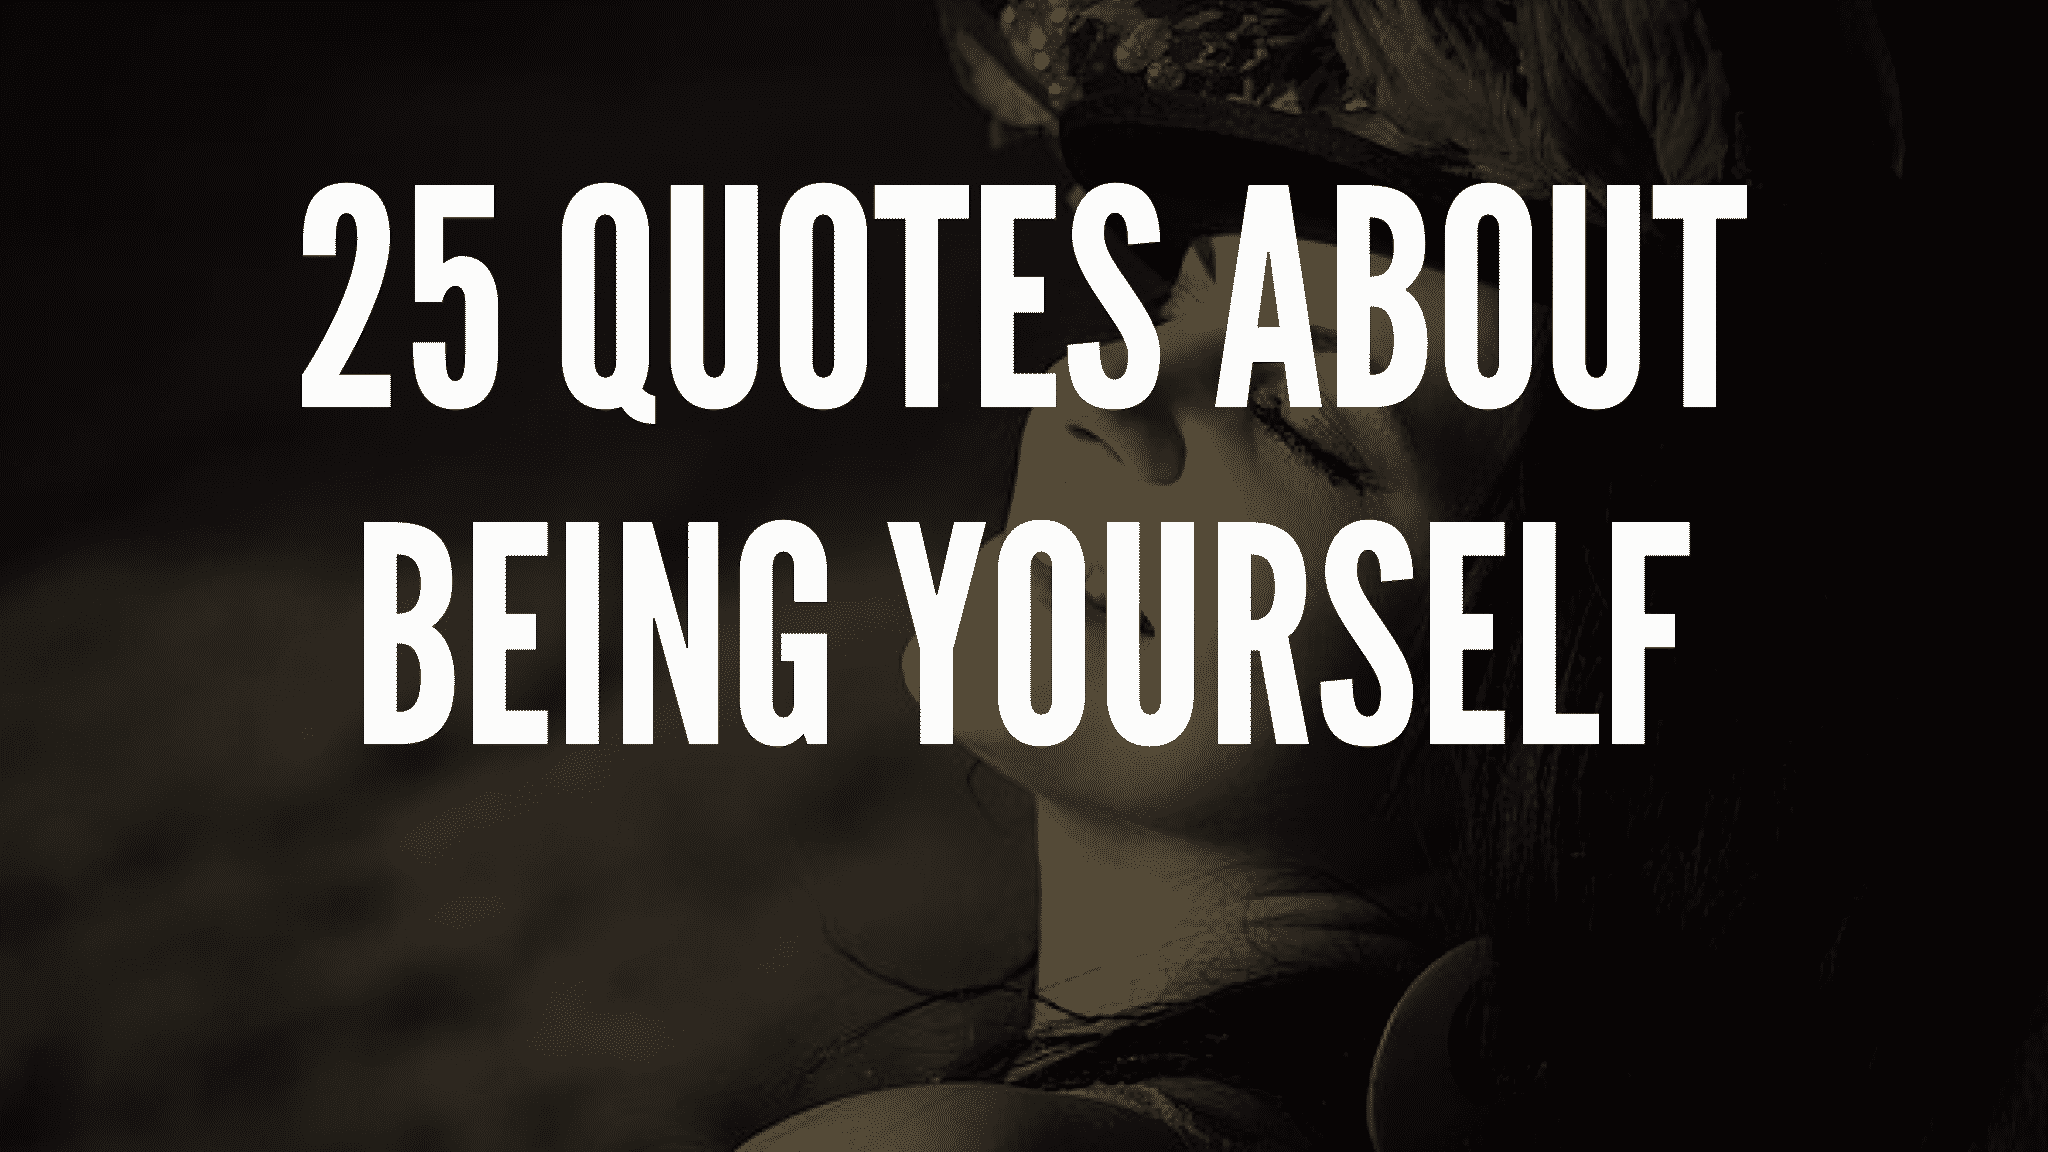 25 Quotes About Being Yourself